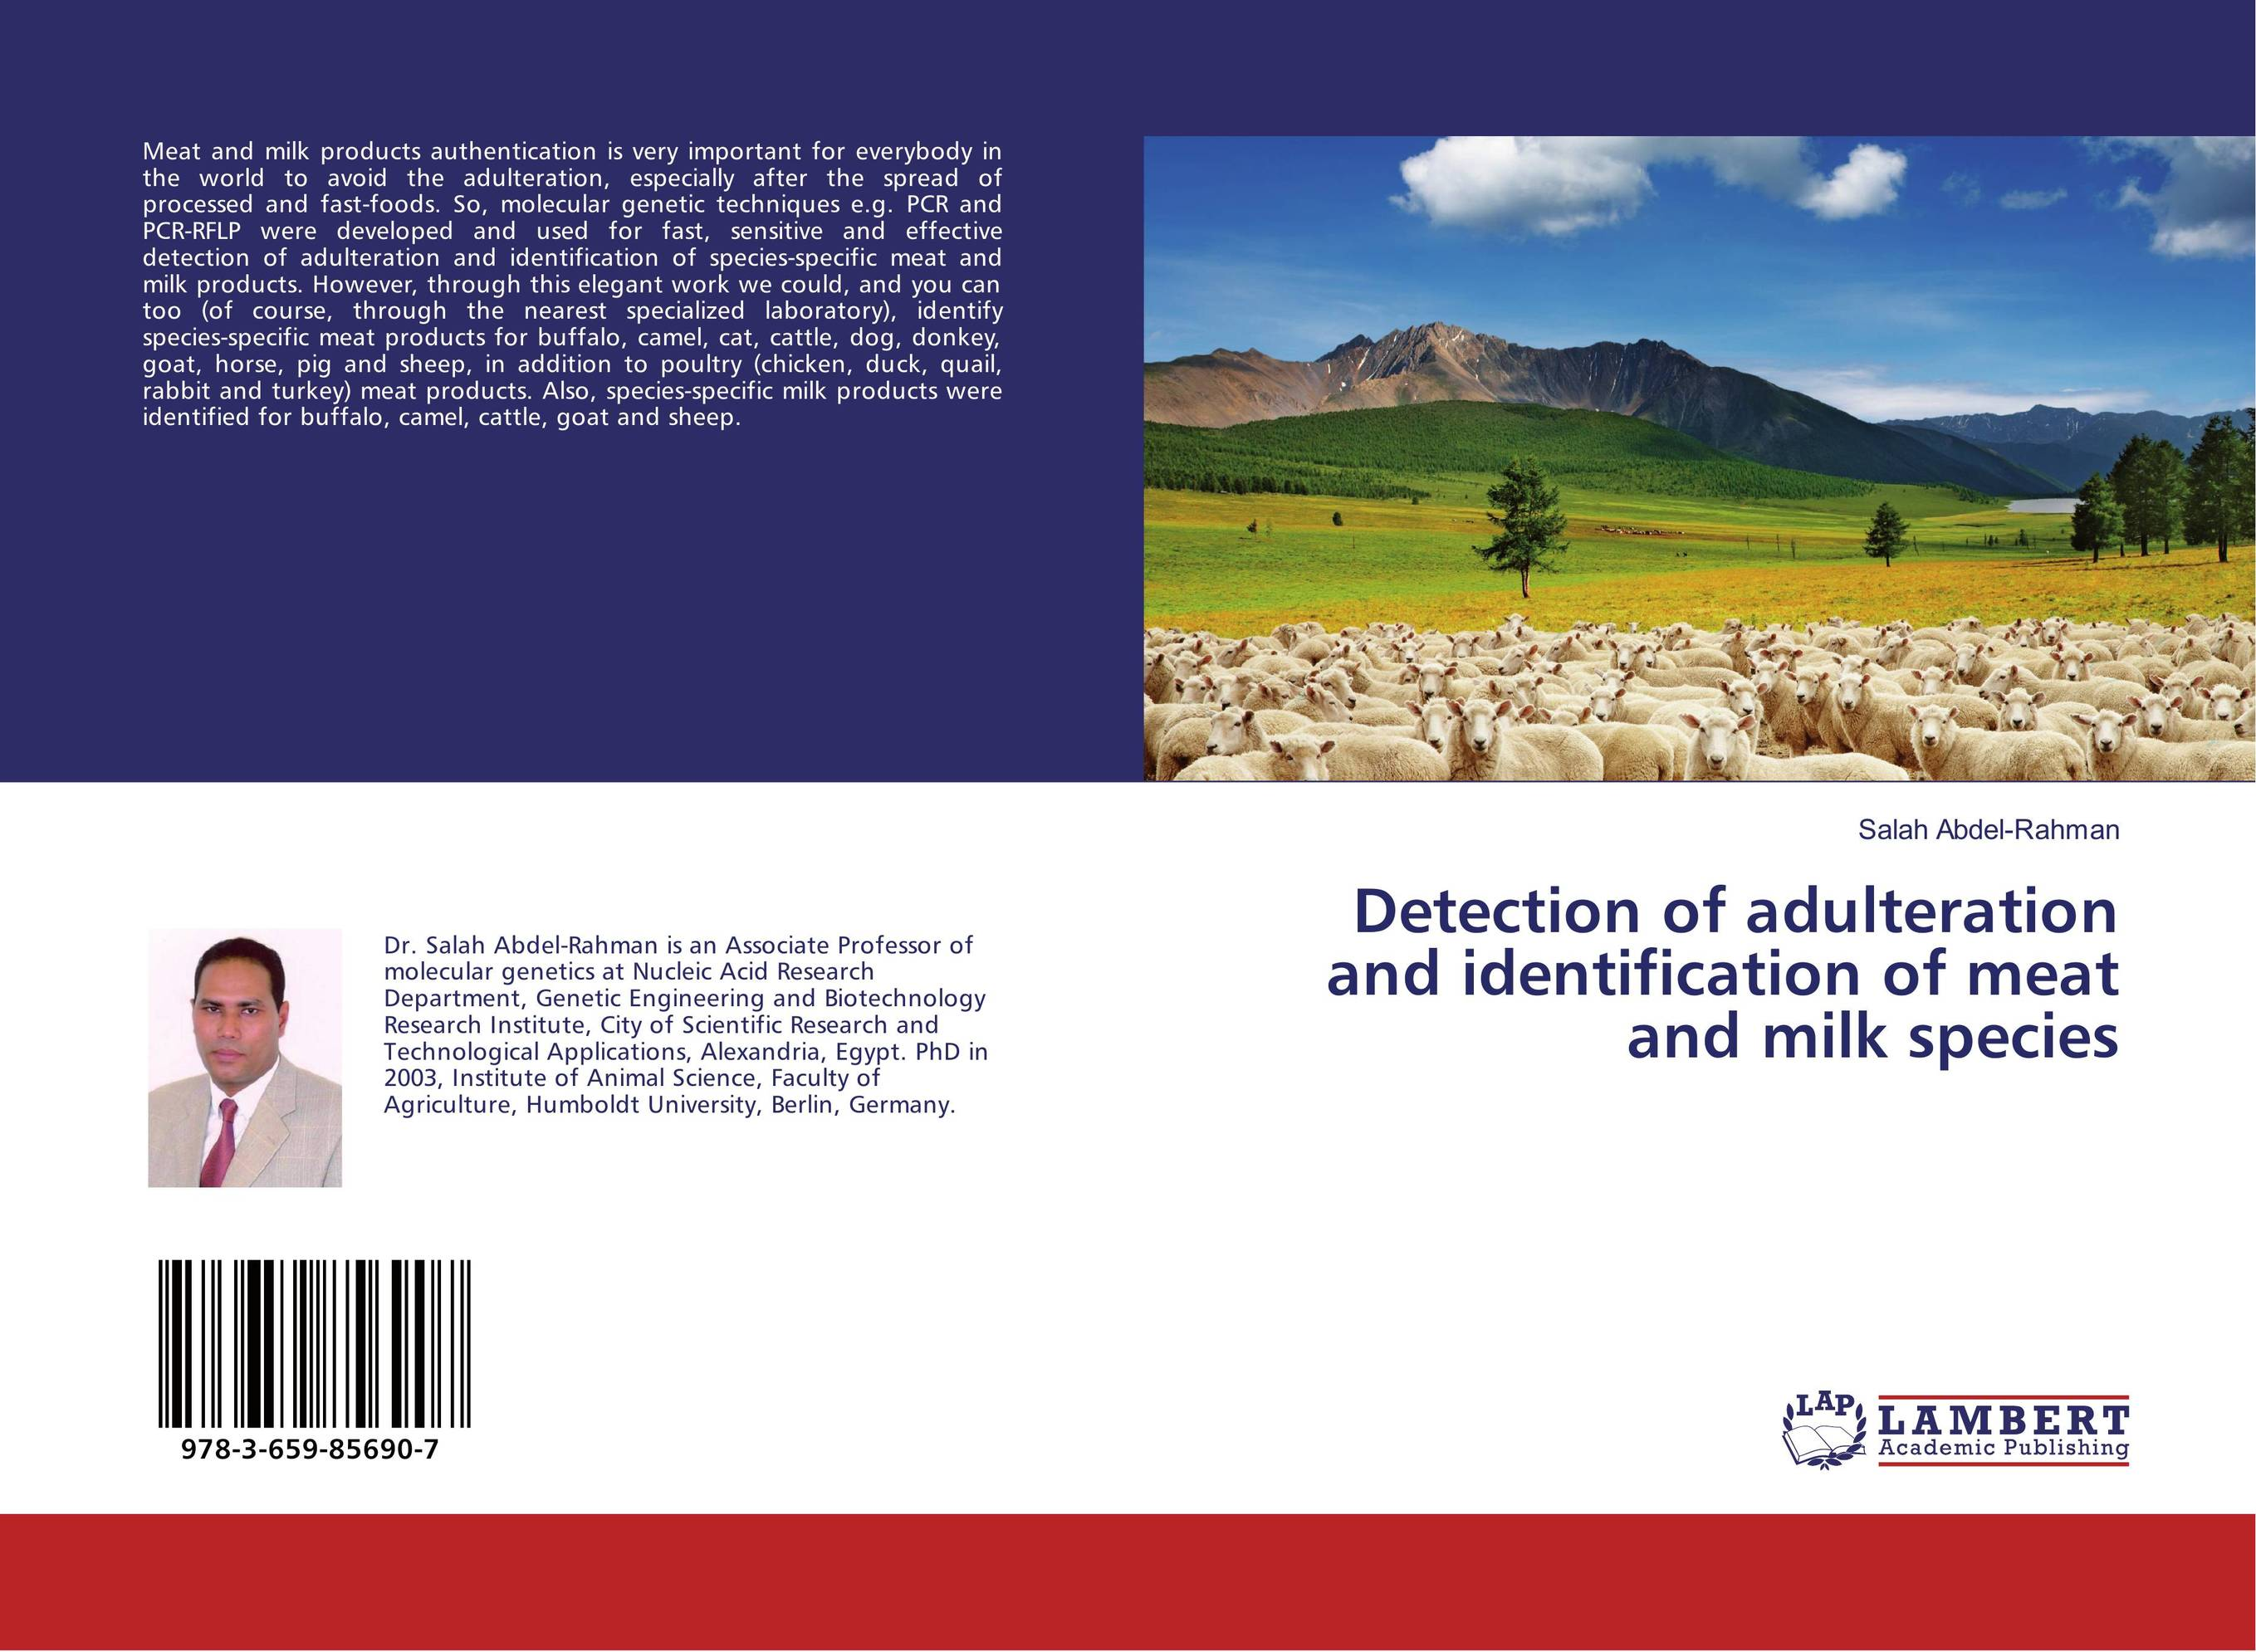 Detection of adulteration and identification of meat and milk species